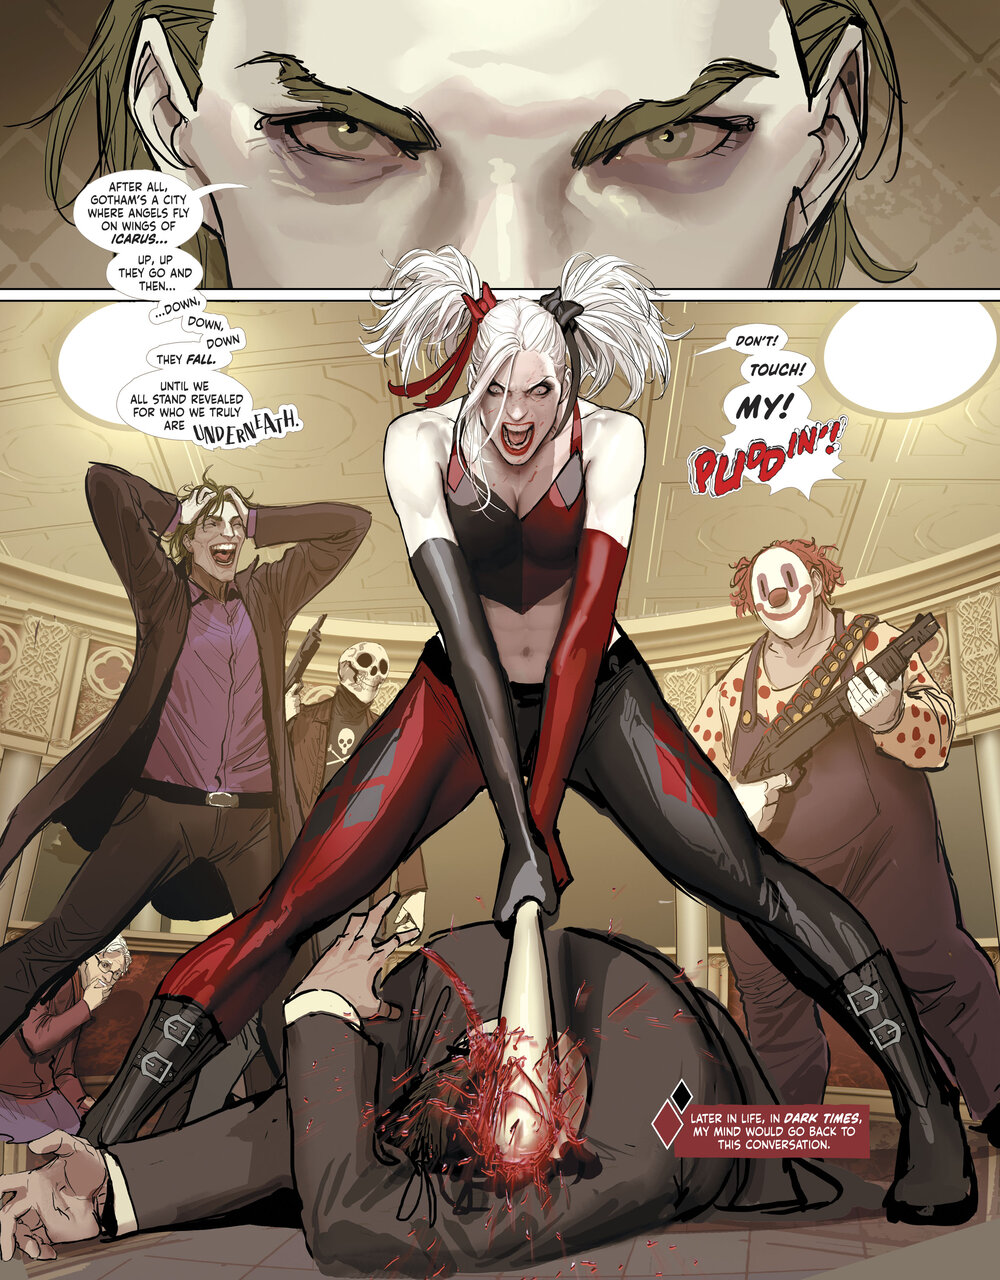 A moment of anger in Harleen #2.